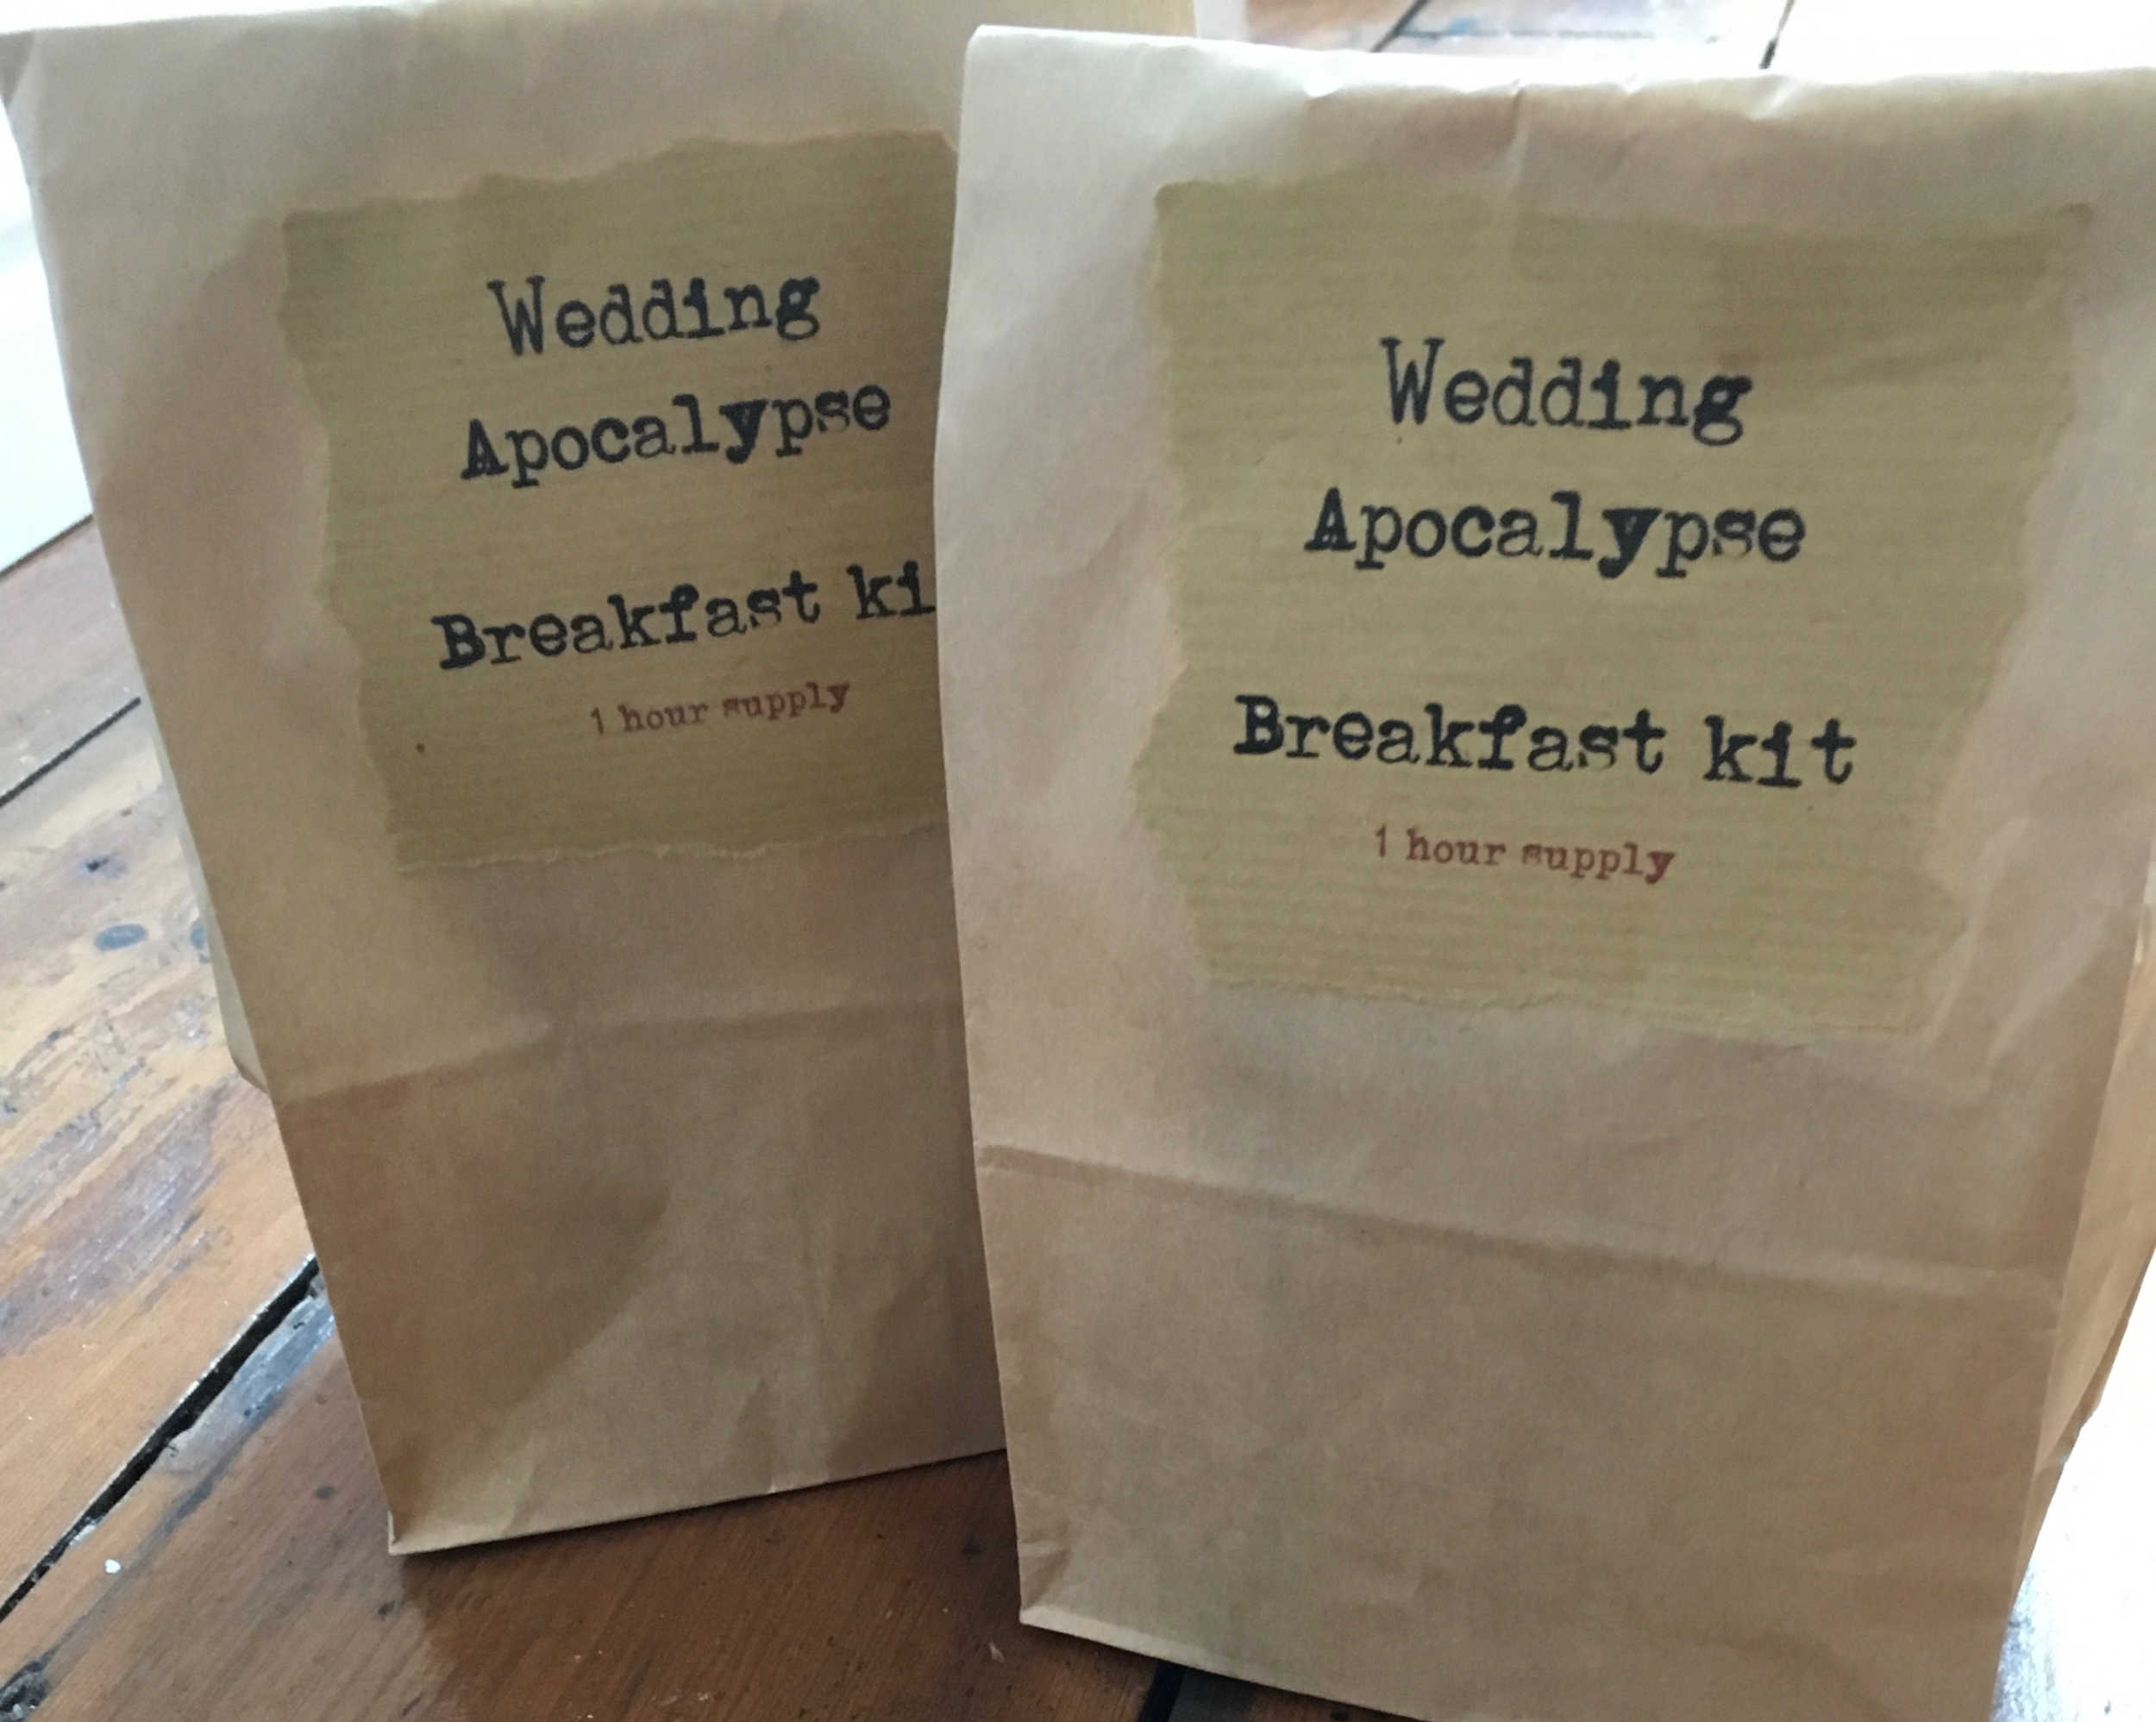 Wedding Breakfast kit.